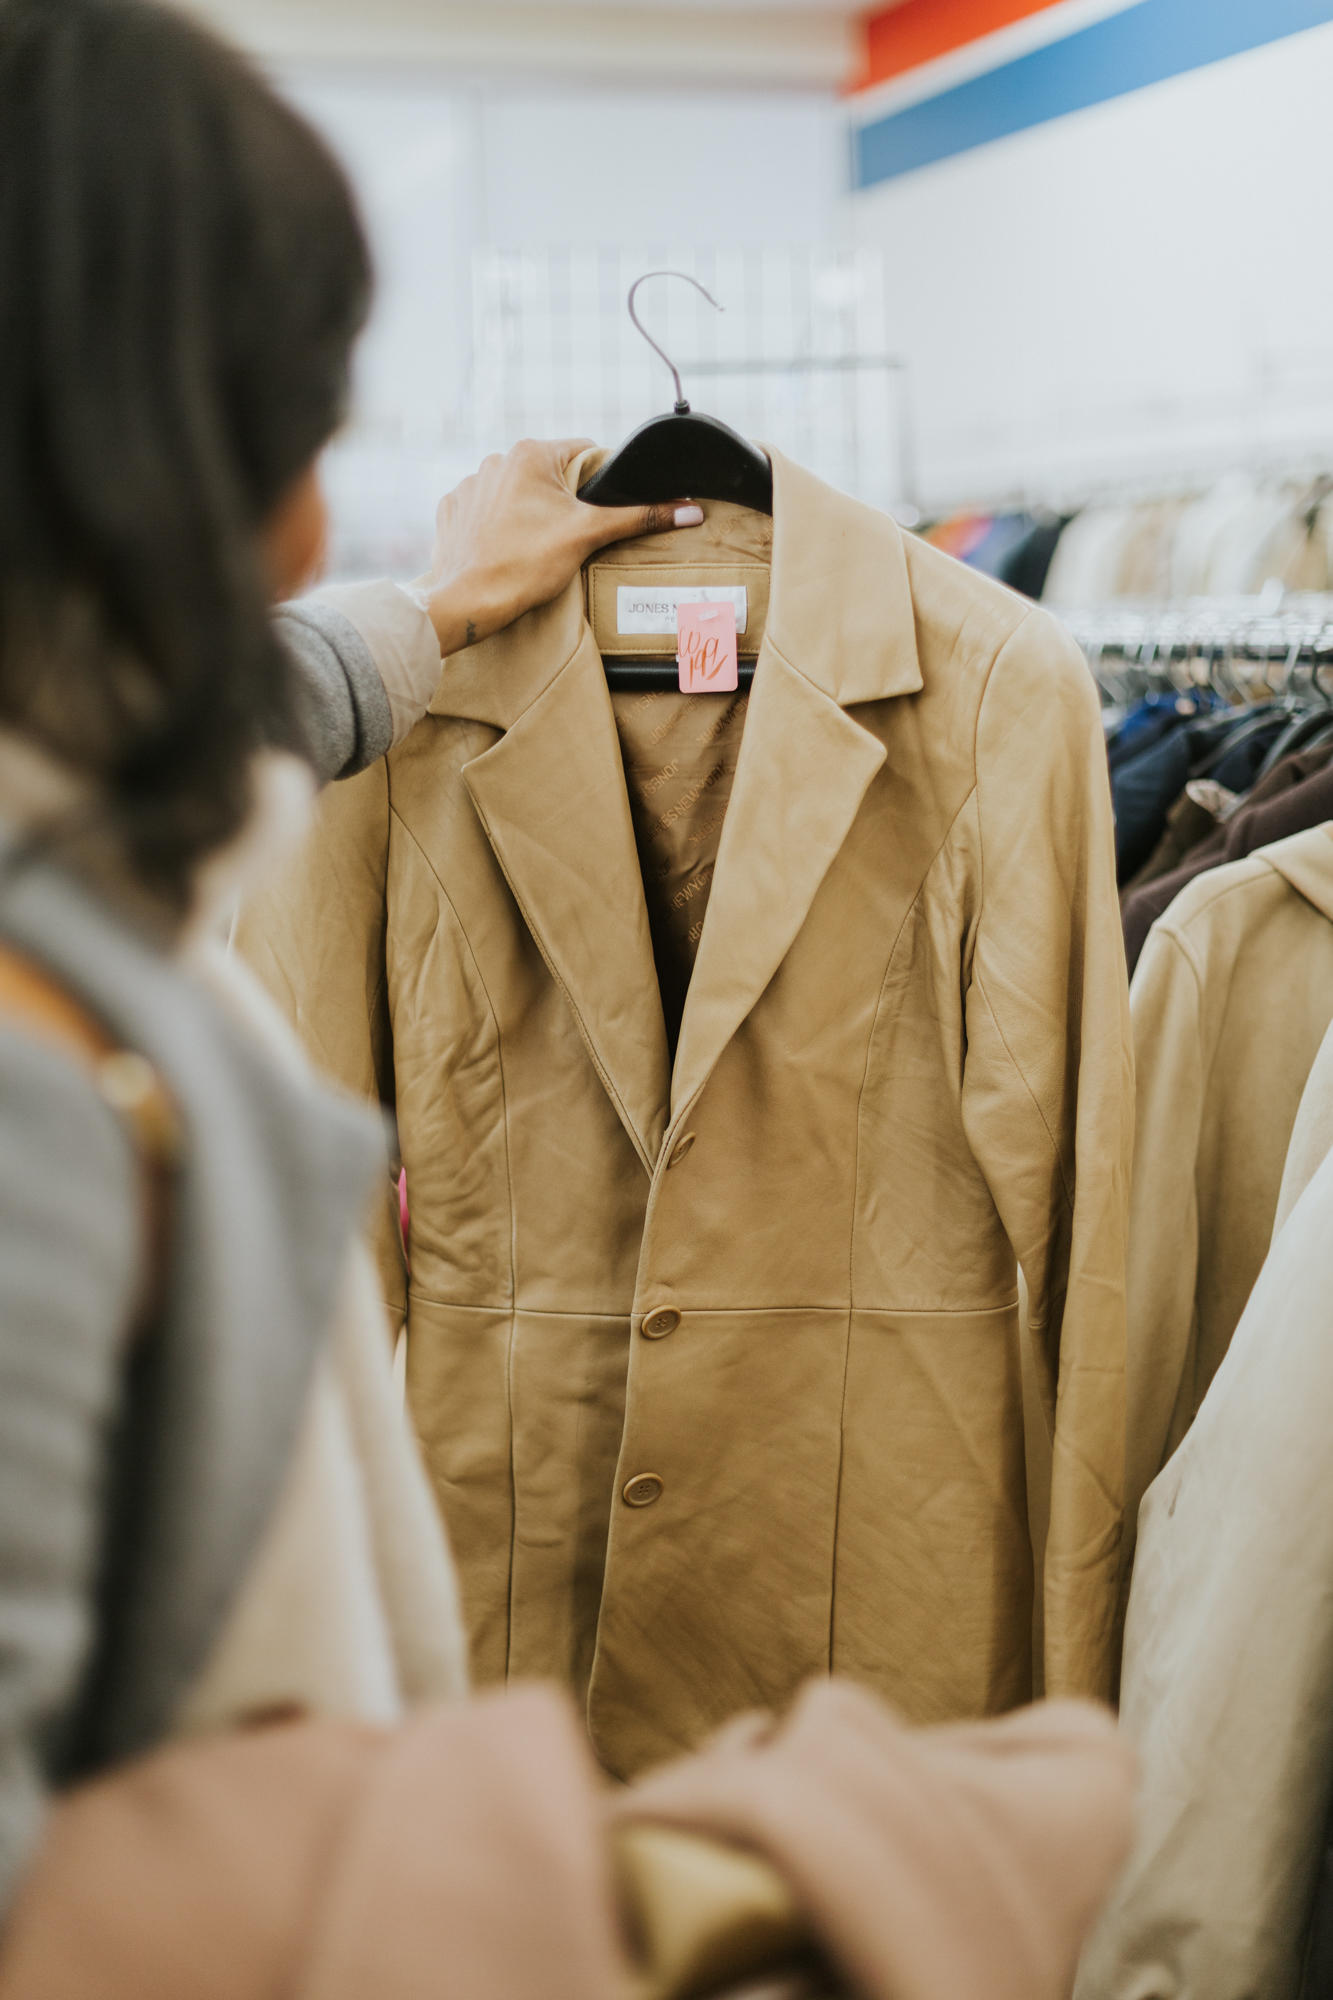 searching for the perfect jacket in thrift store